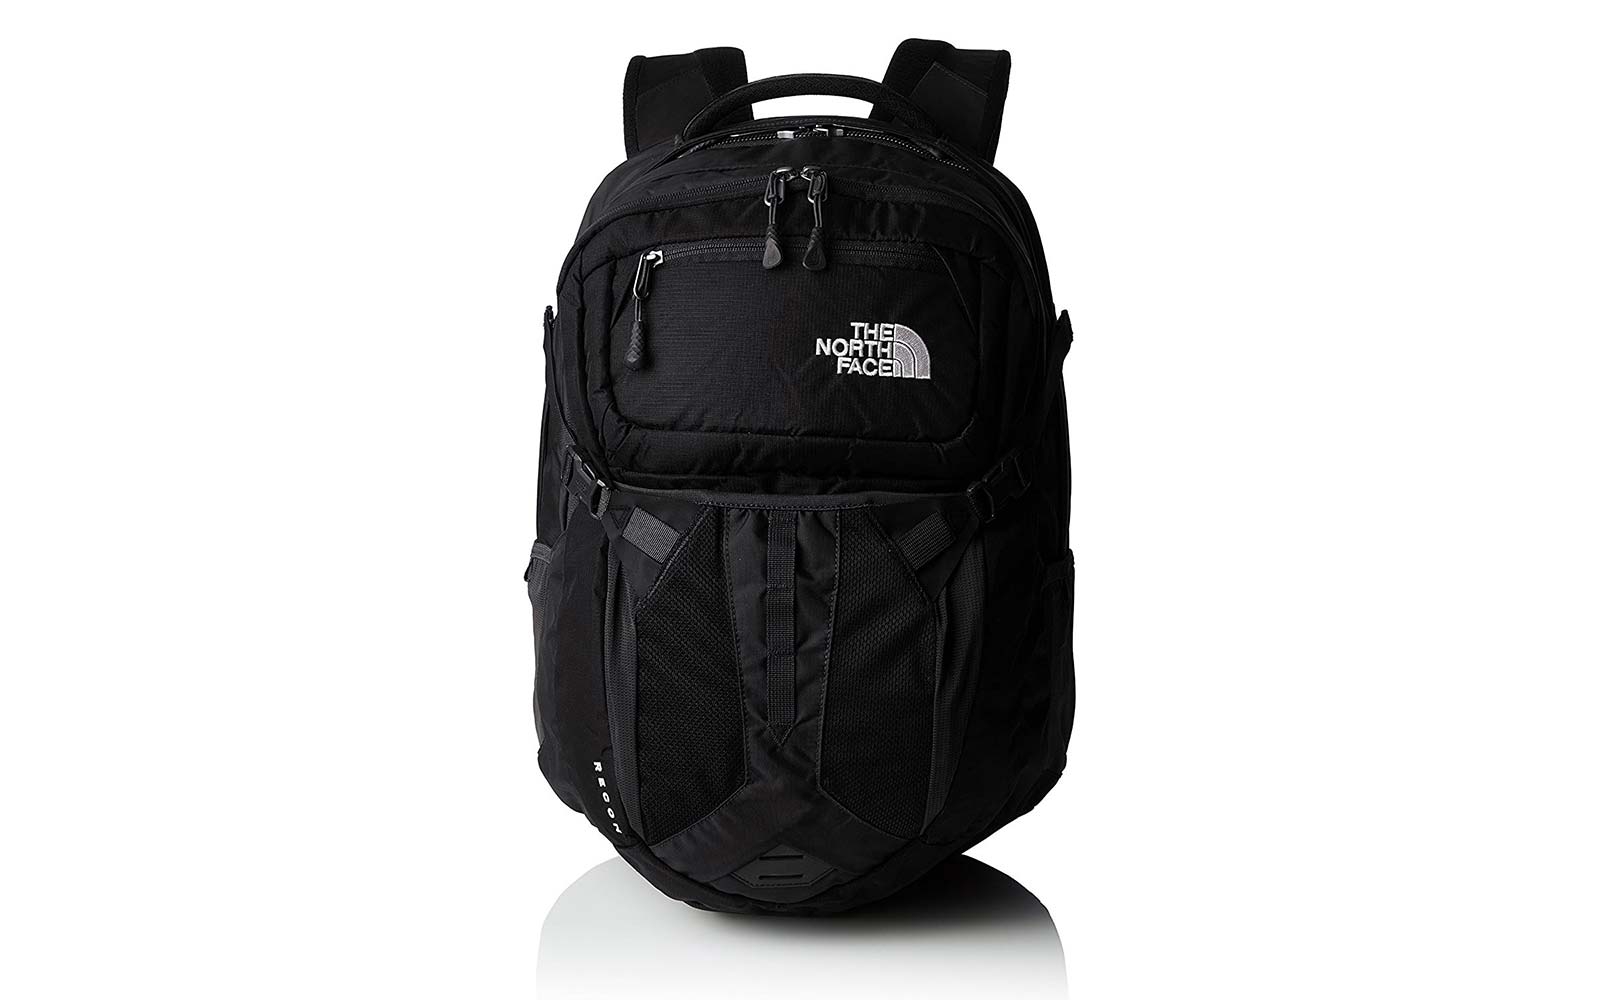 The North Face travel backpack